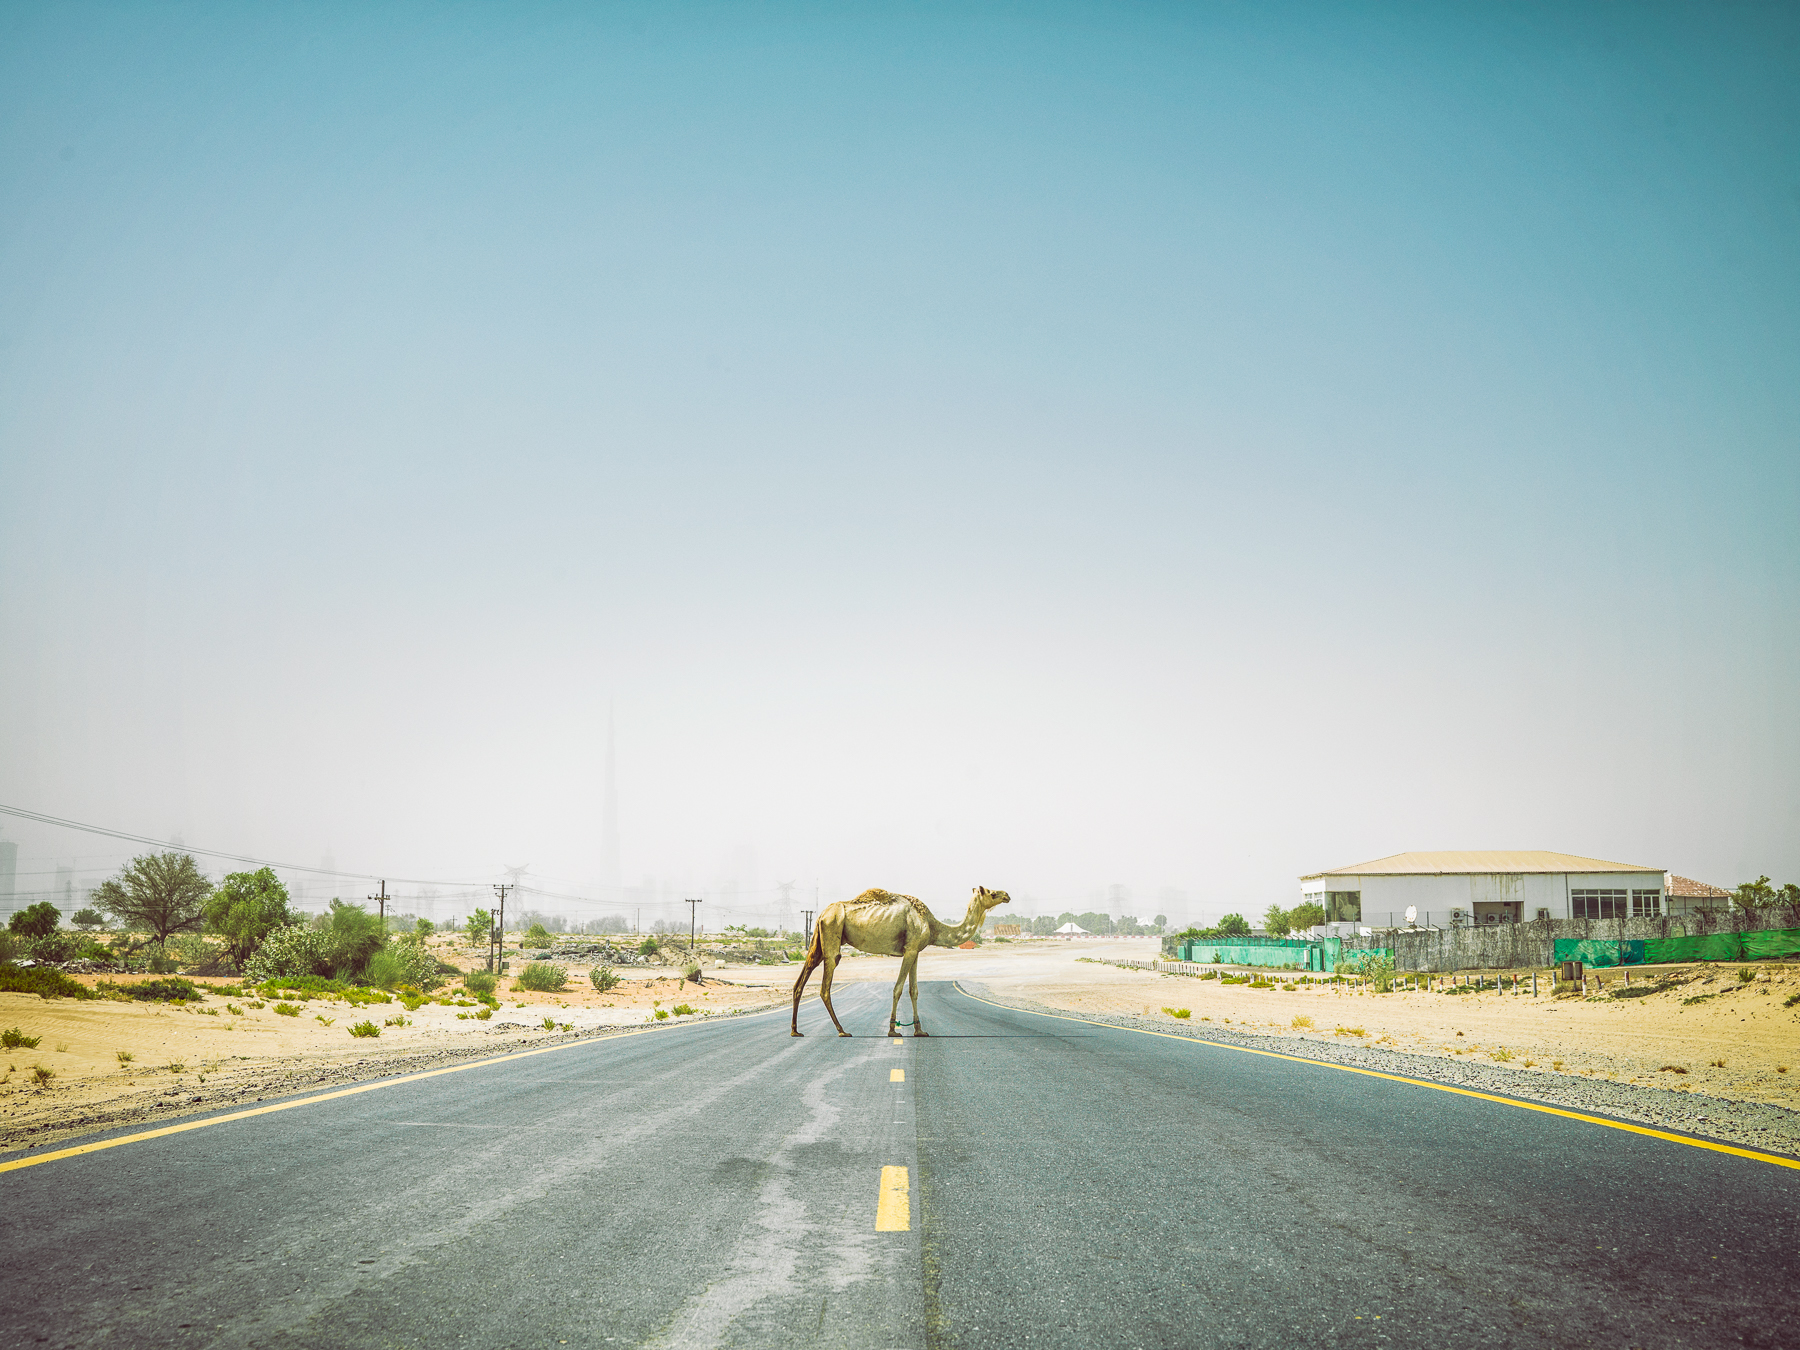 Camel Walking in the Middle of the Road